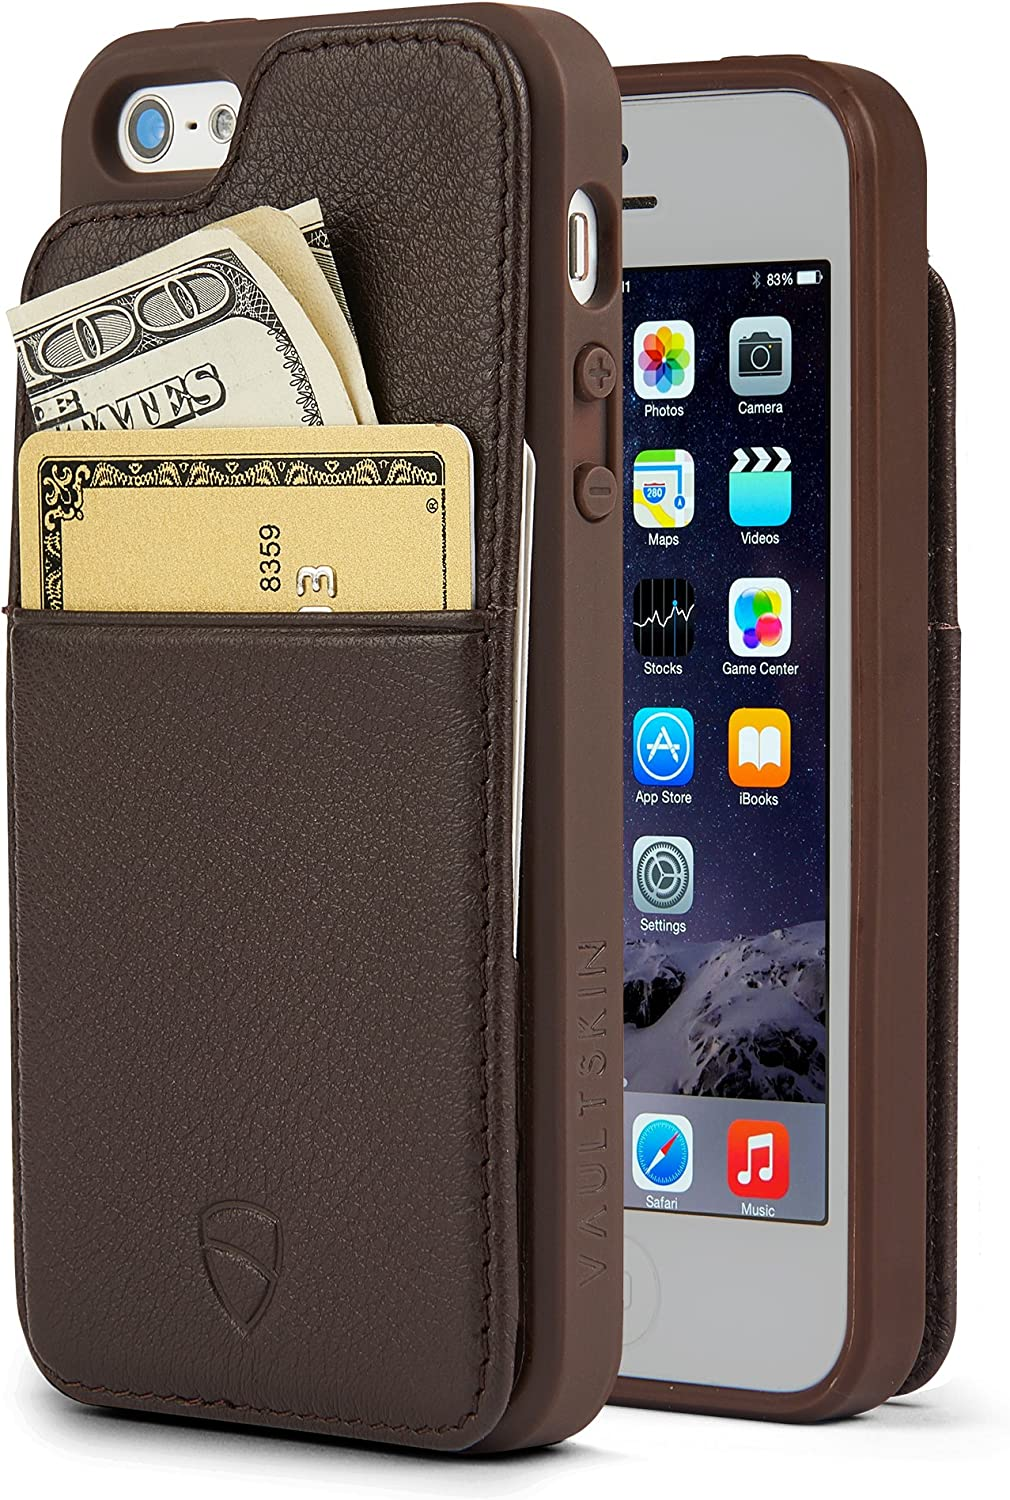 iPhone SE / 5S Walle Case, Vaultskin Eton Armour iPhone SE / 5S Case Wallet, Slim, Minimalist Genuine Leather Case - Holds up to 8 Cards/Top Grain Leather (Brown)